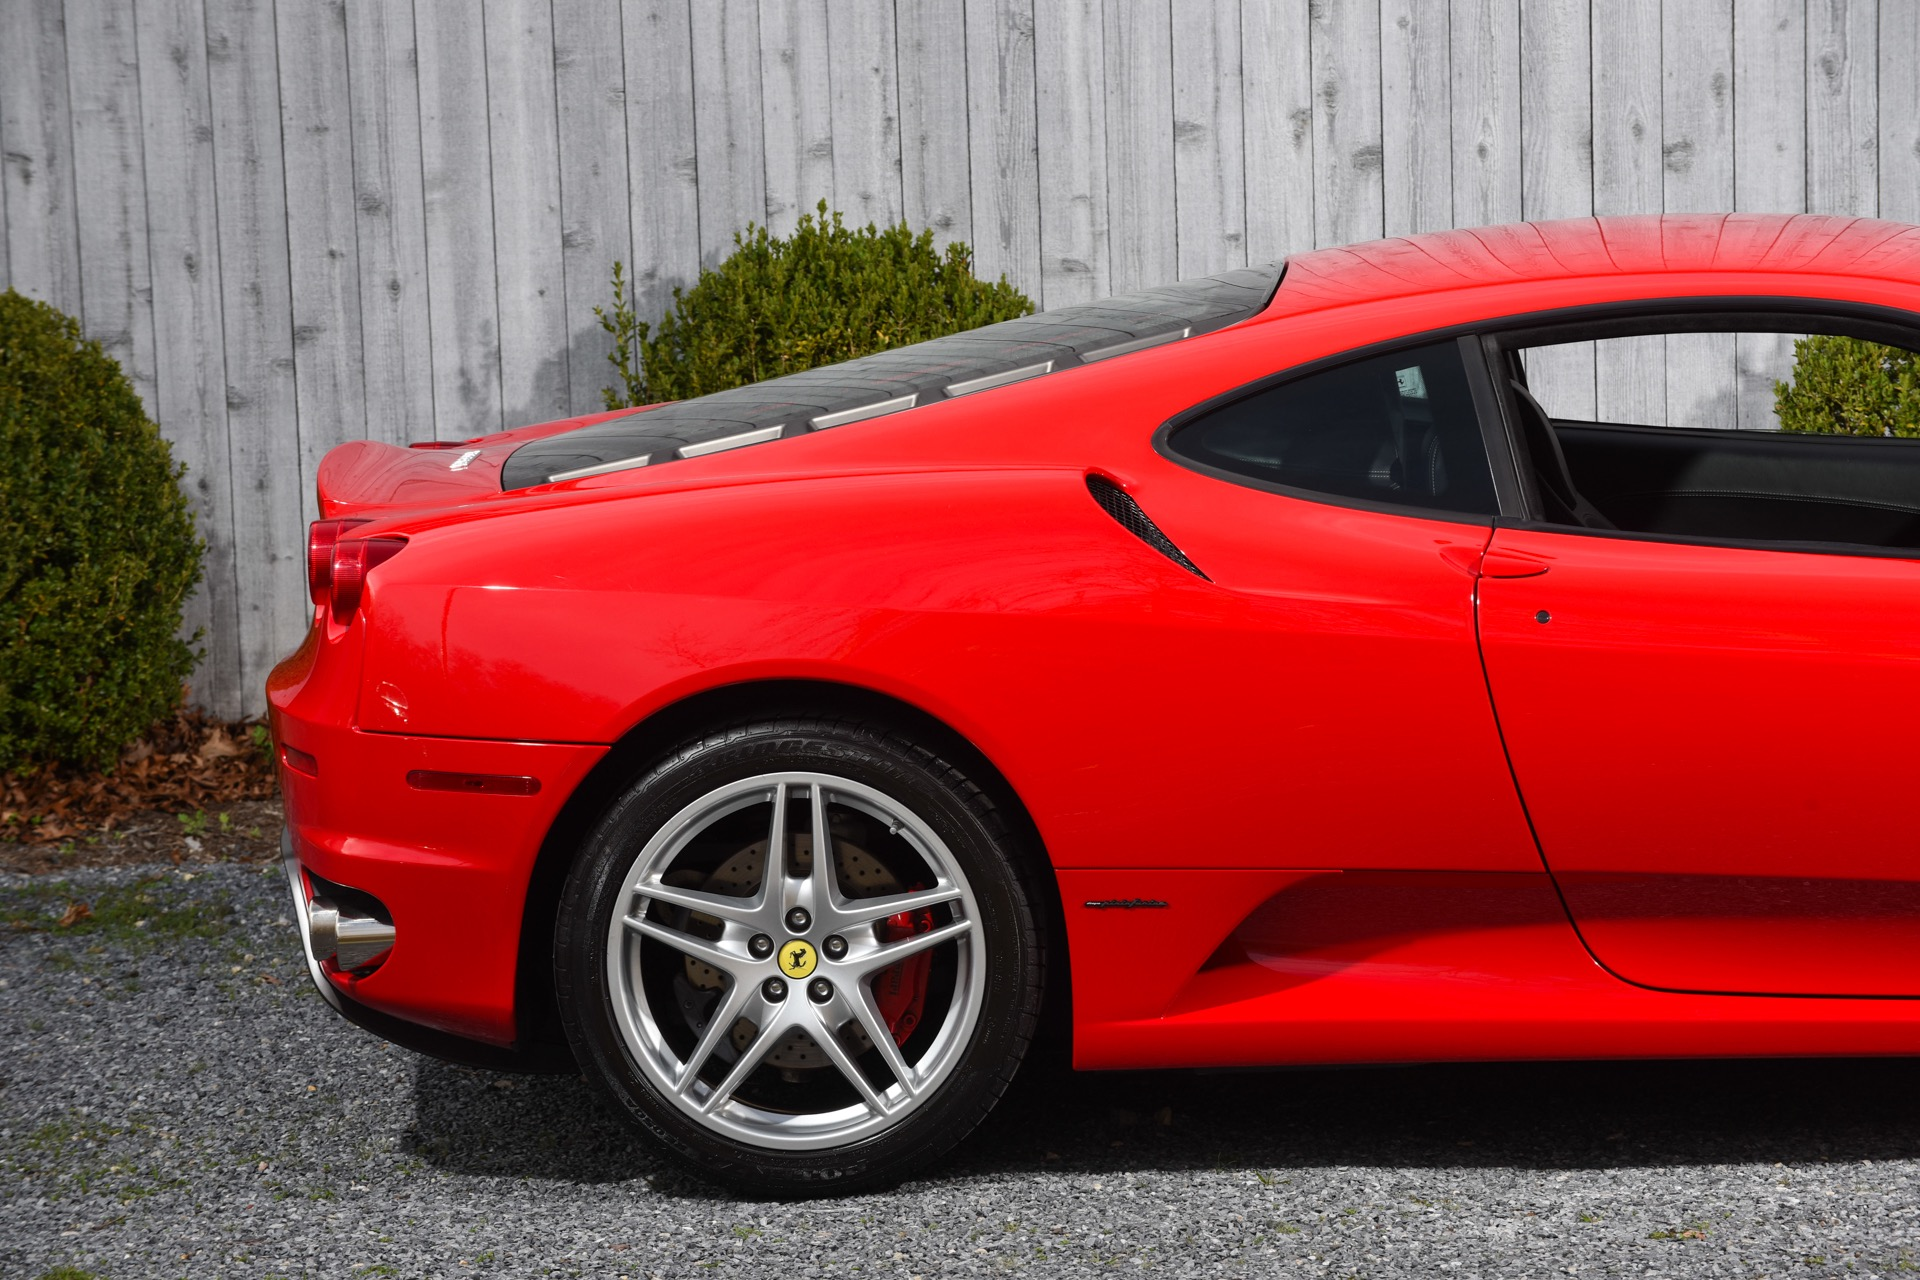 Used 2005 Ferrari F430 Coupe 6-Speed Manual | Valley Stream, NY